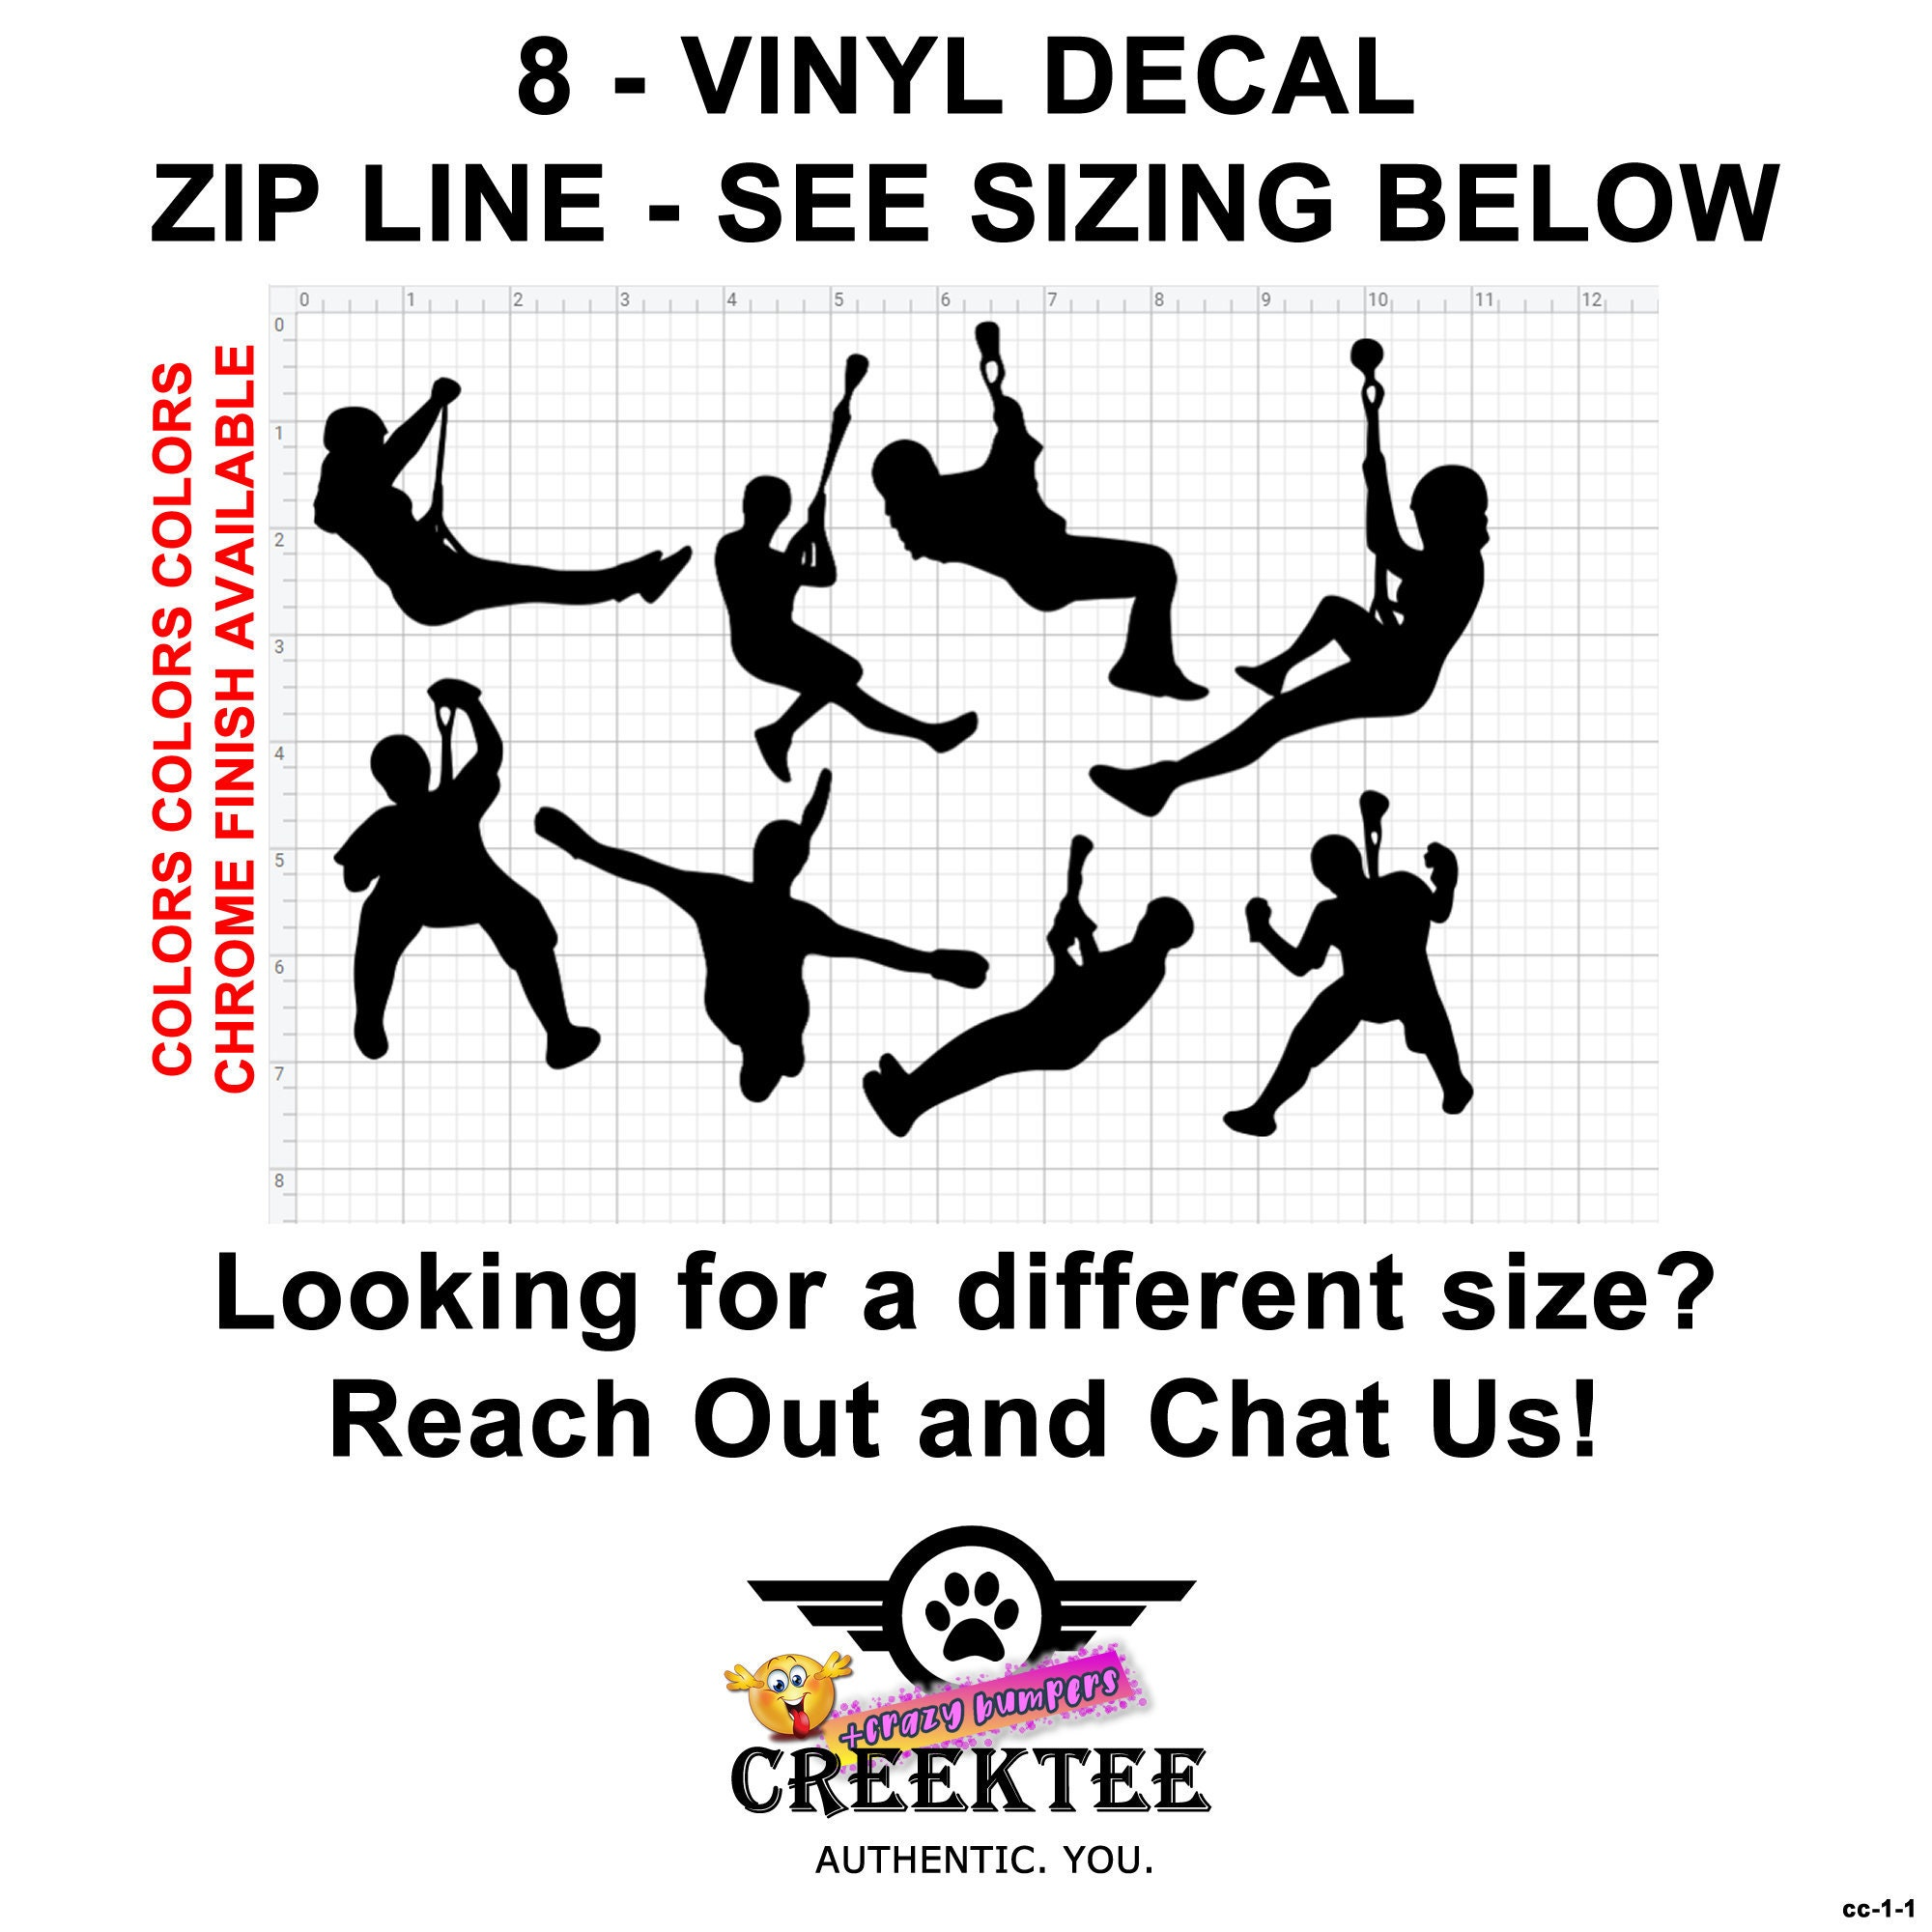 CAD$7.99 - 8 Zip line Vinyl Decals see image for sizing also various sizes and colors - colours